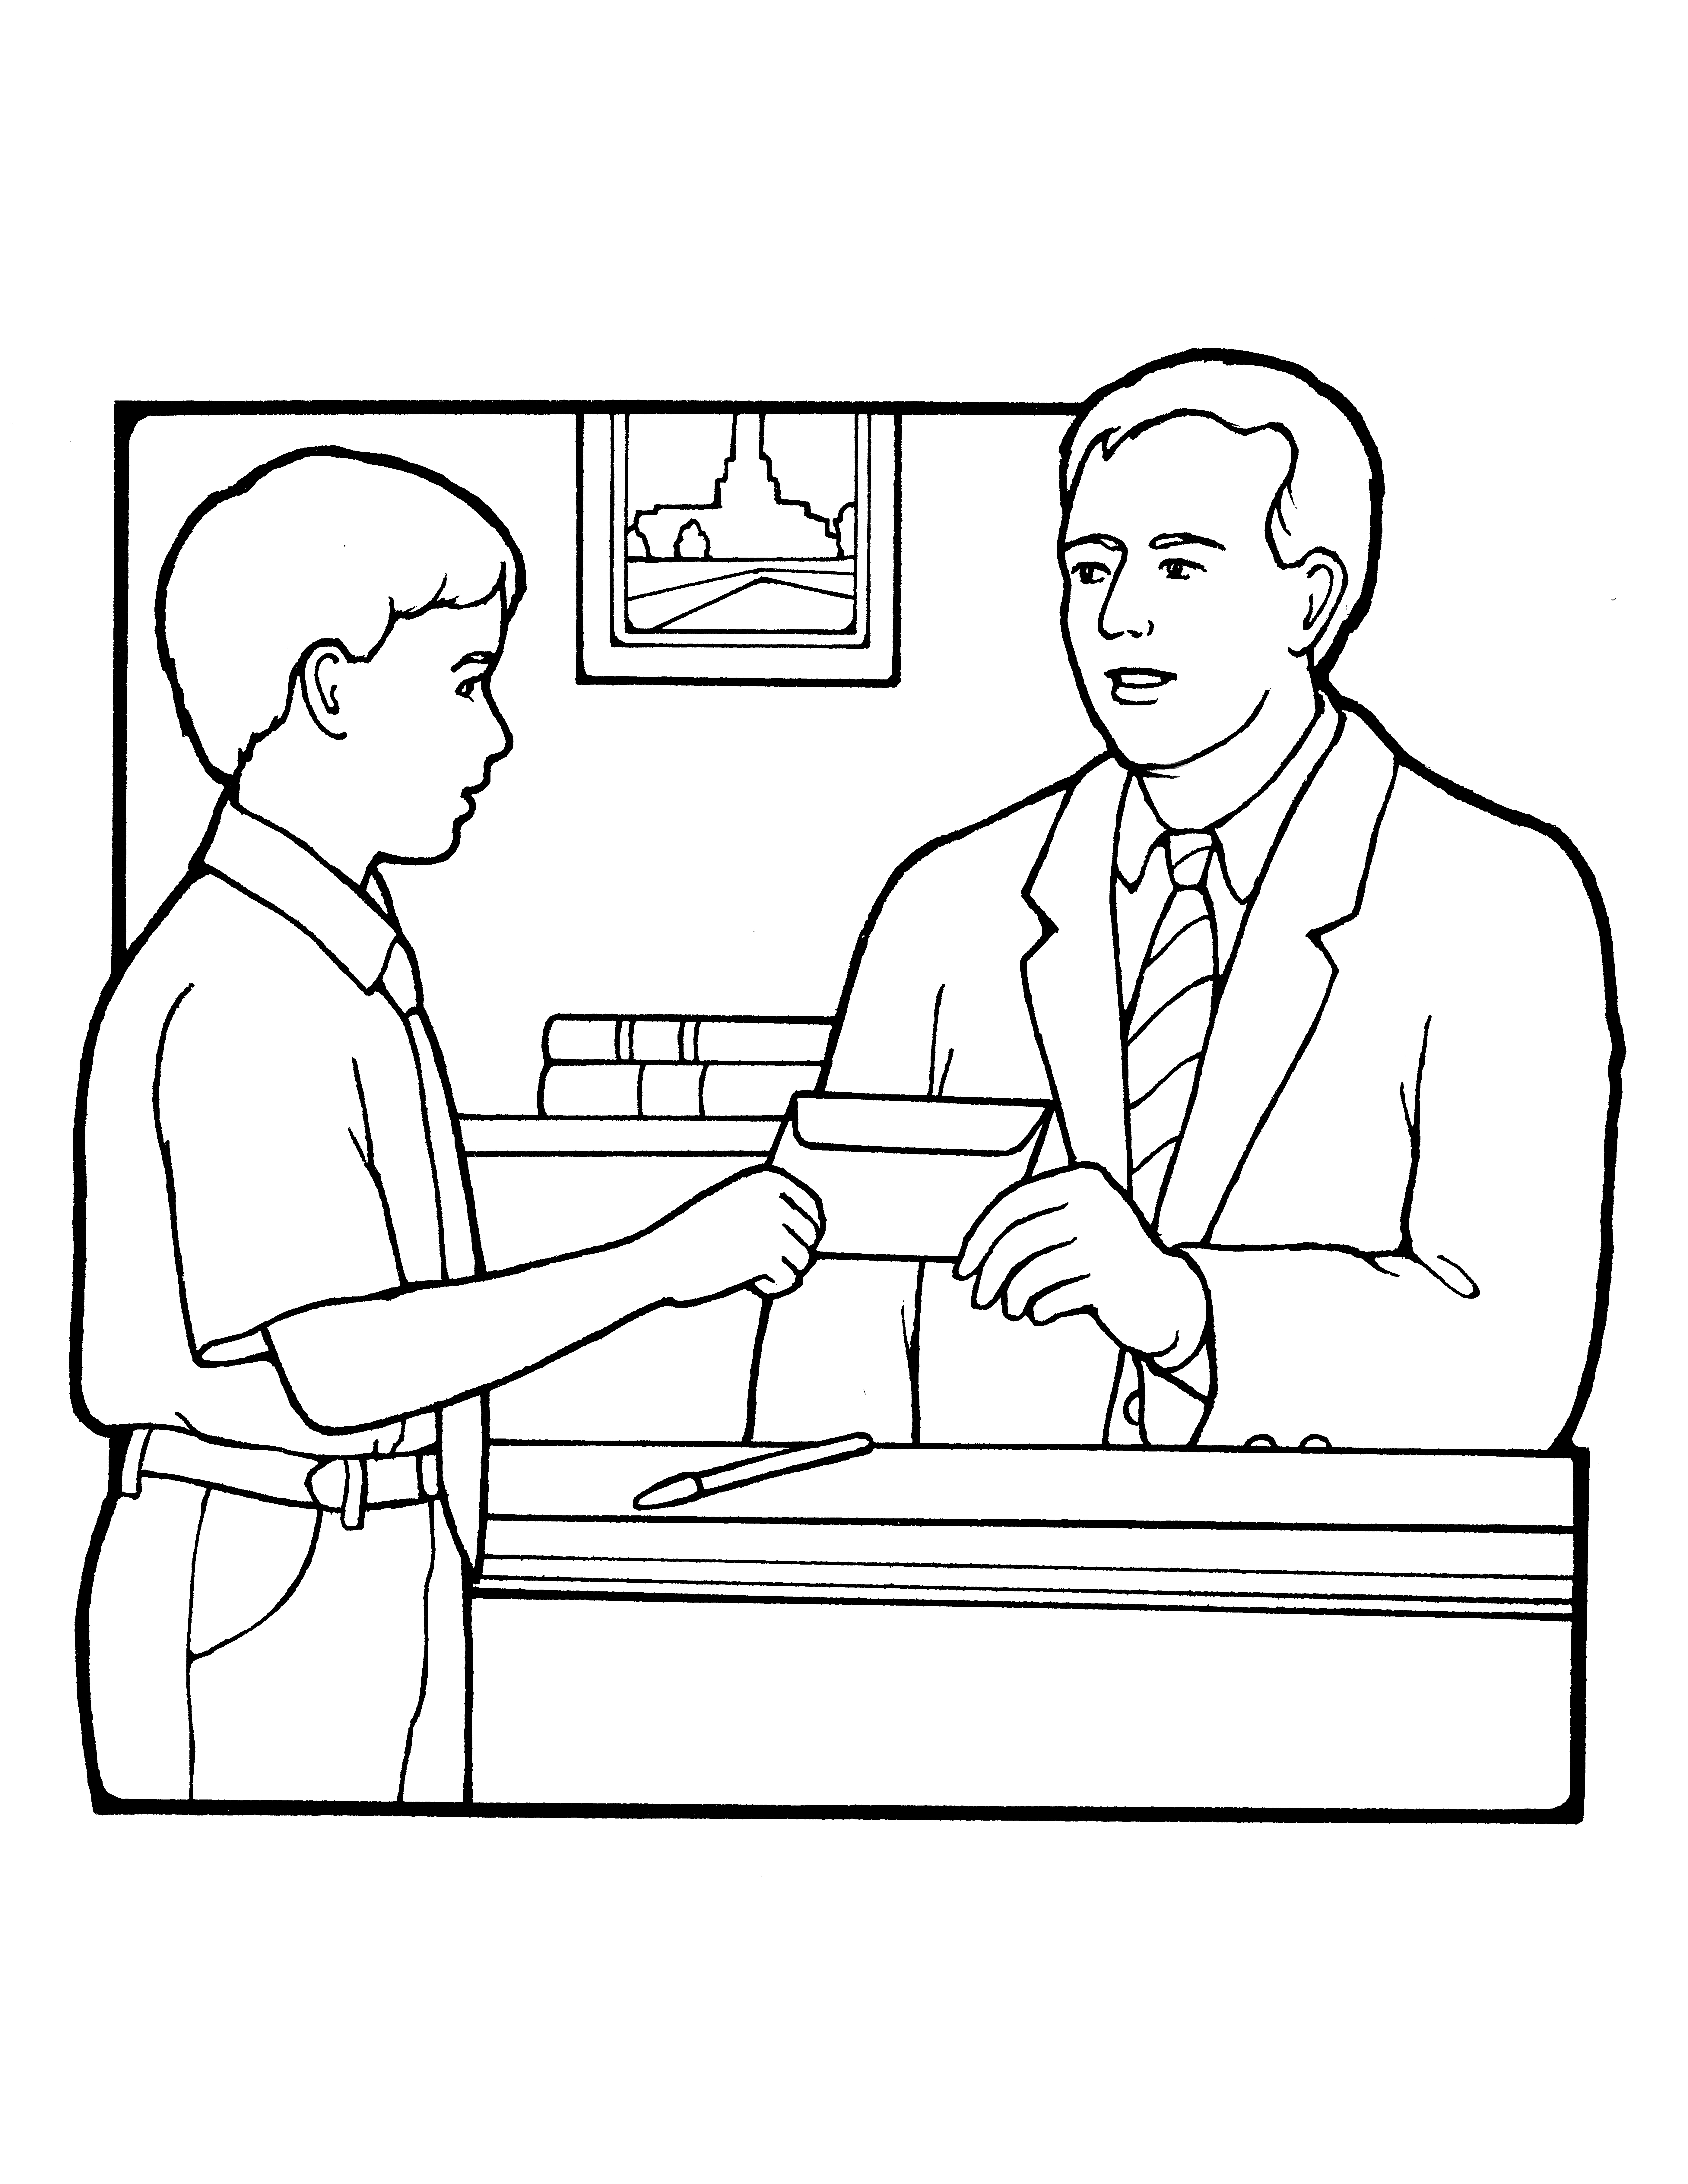 A black-and-white illustration of a young boy handing a tithing envelope to his bishop in the bishop's office.